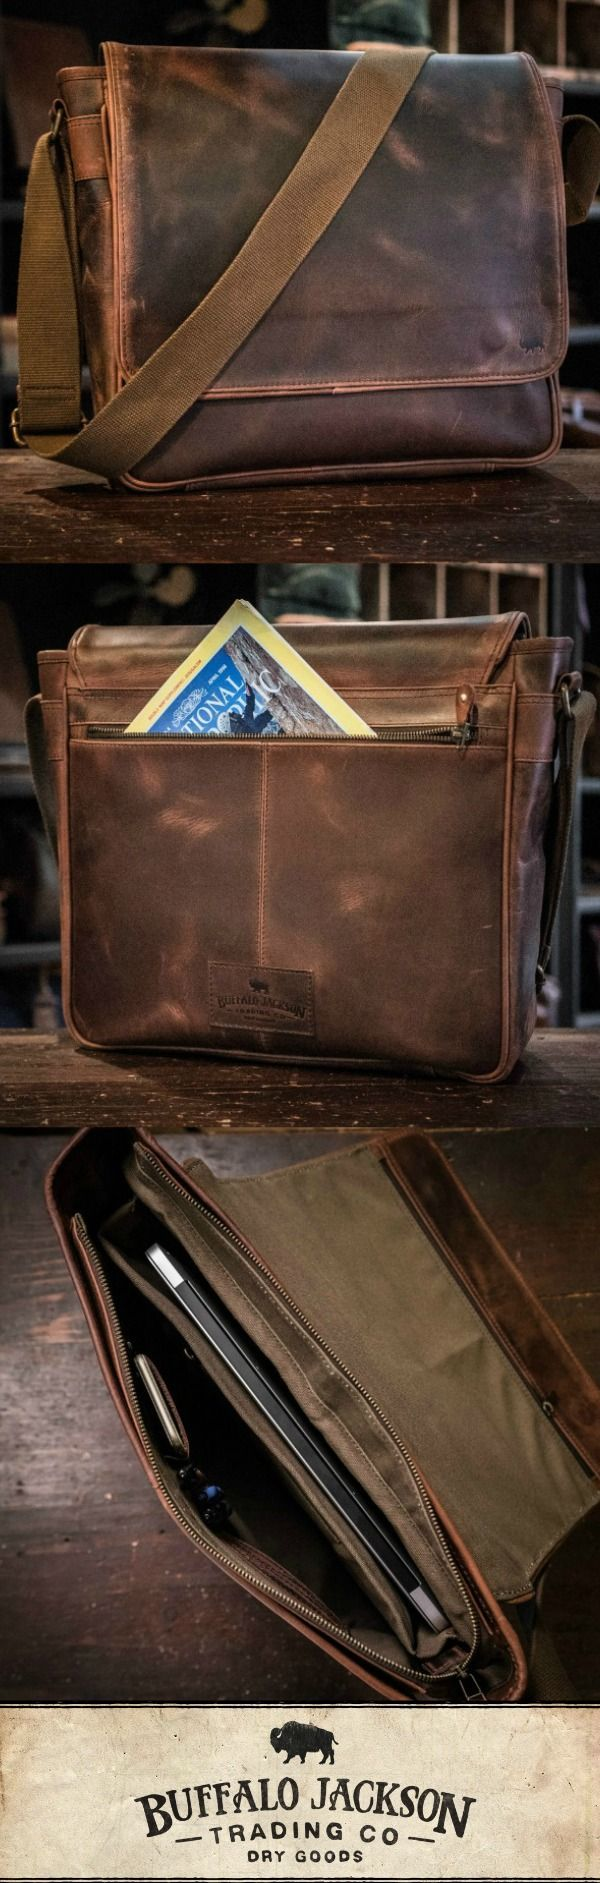 c103c912393a Men s vintage dark brown leather satchel messenger bag. Handcrafted to  handle whatever you throw at it - work